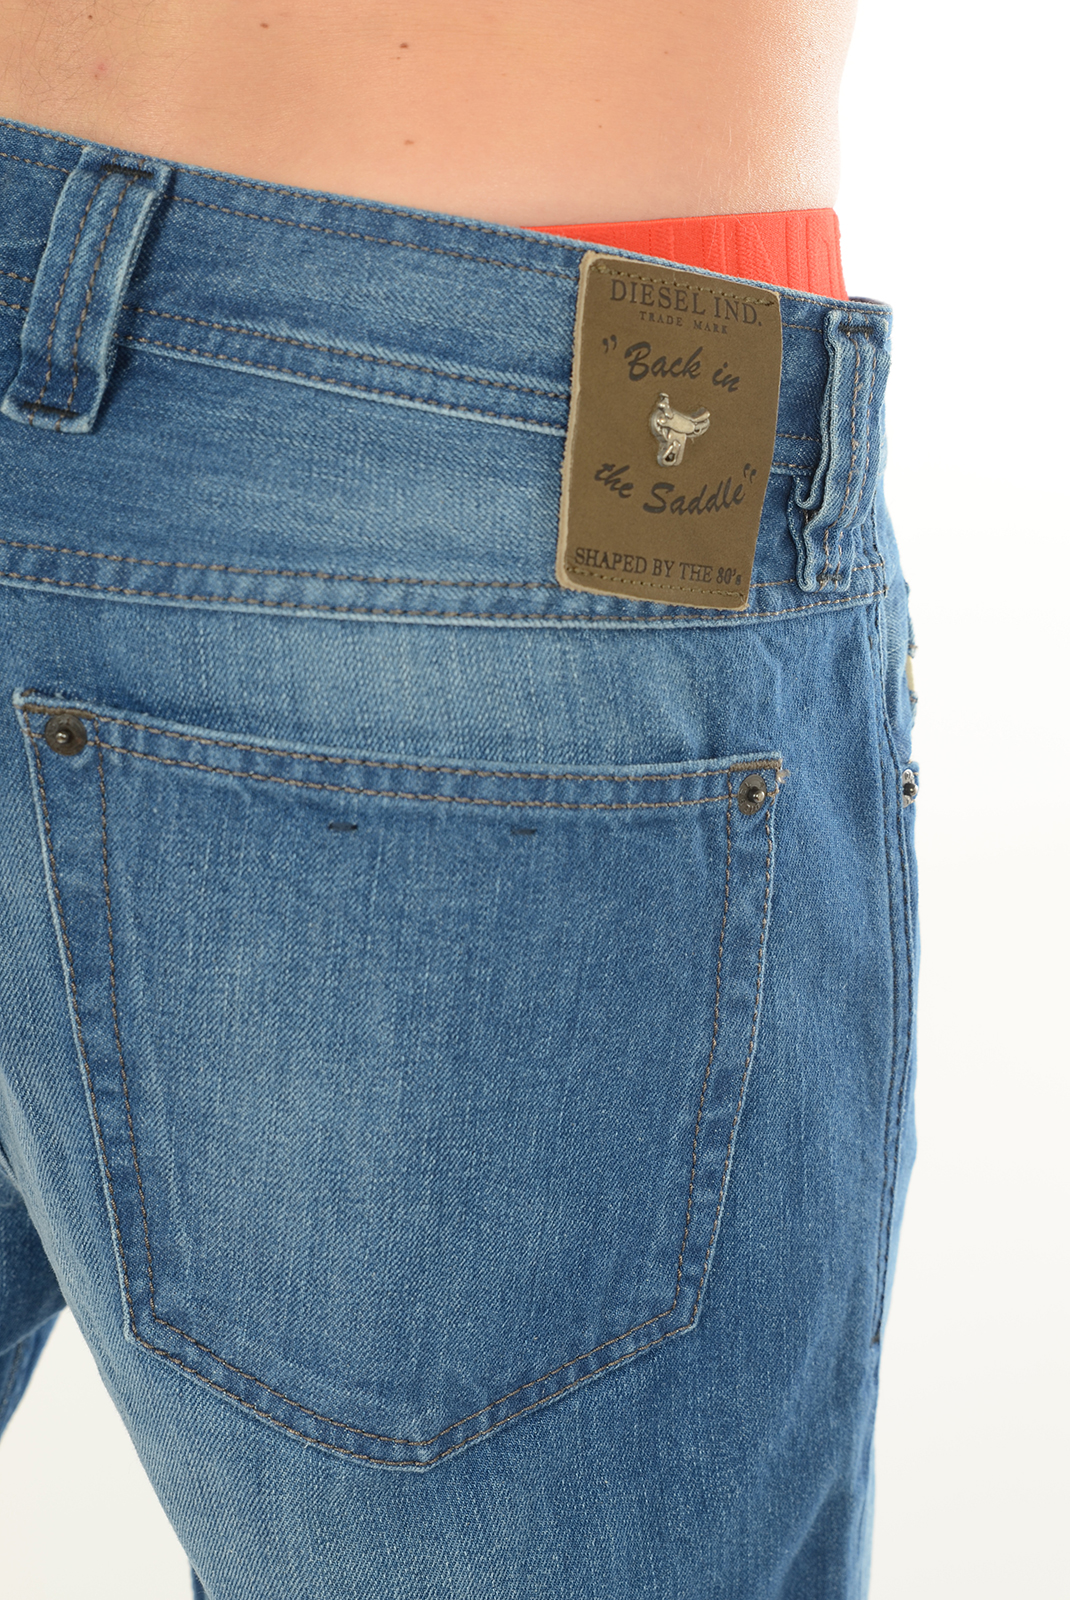 DIESEL JEANS CARROT STONE BACK IN THE SADDLE BLEU HOMME